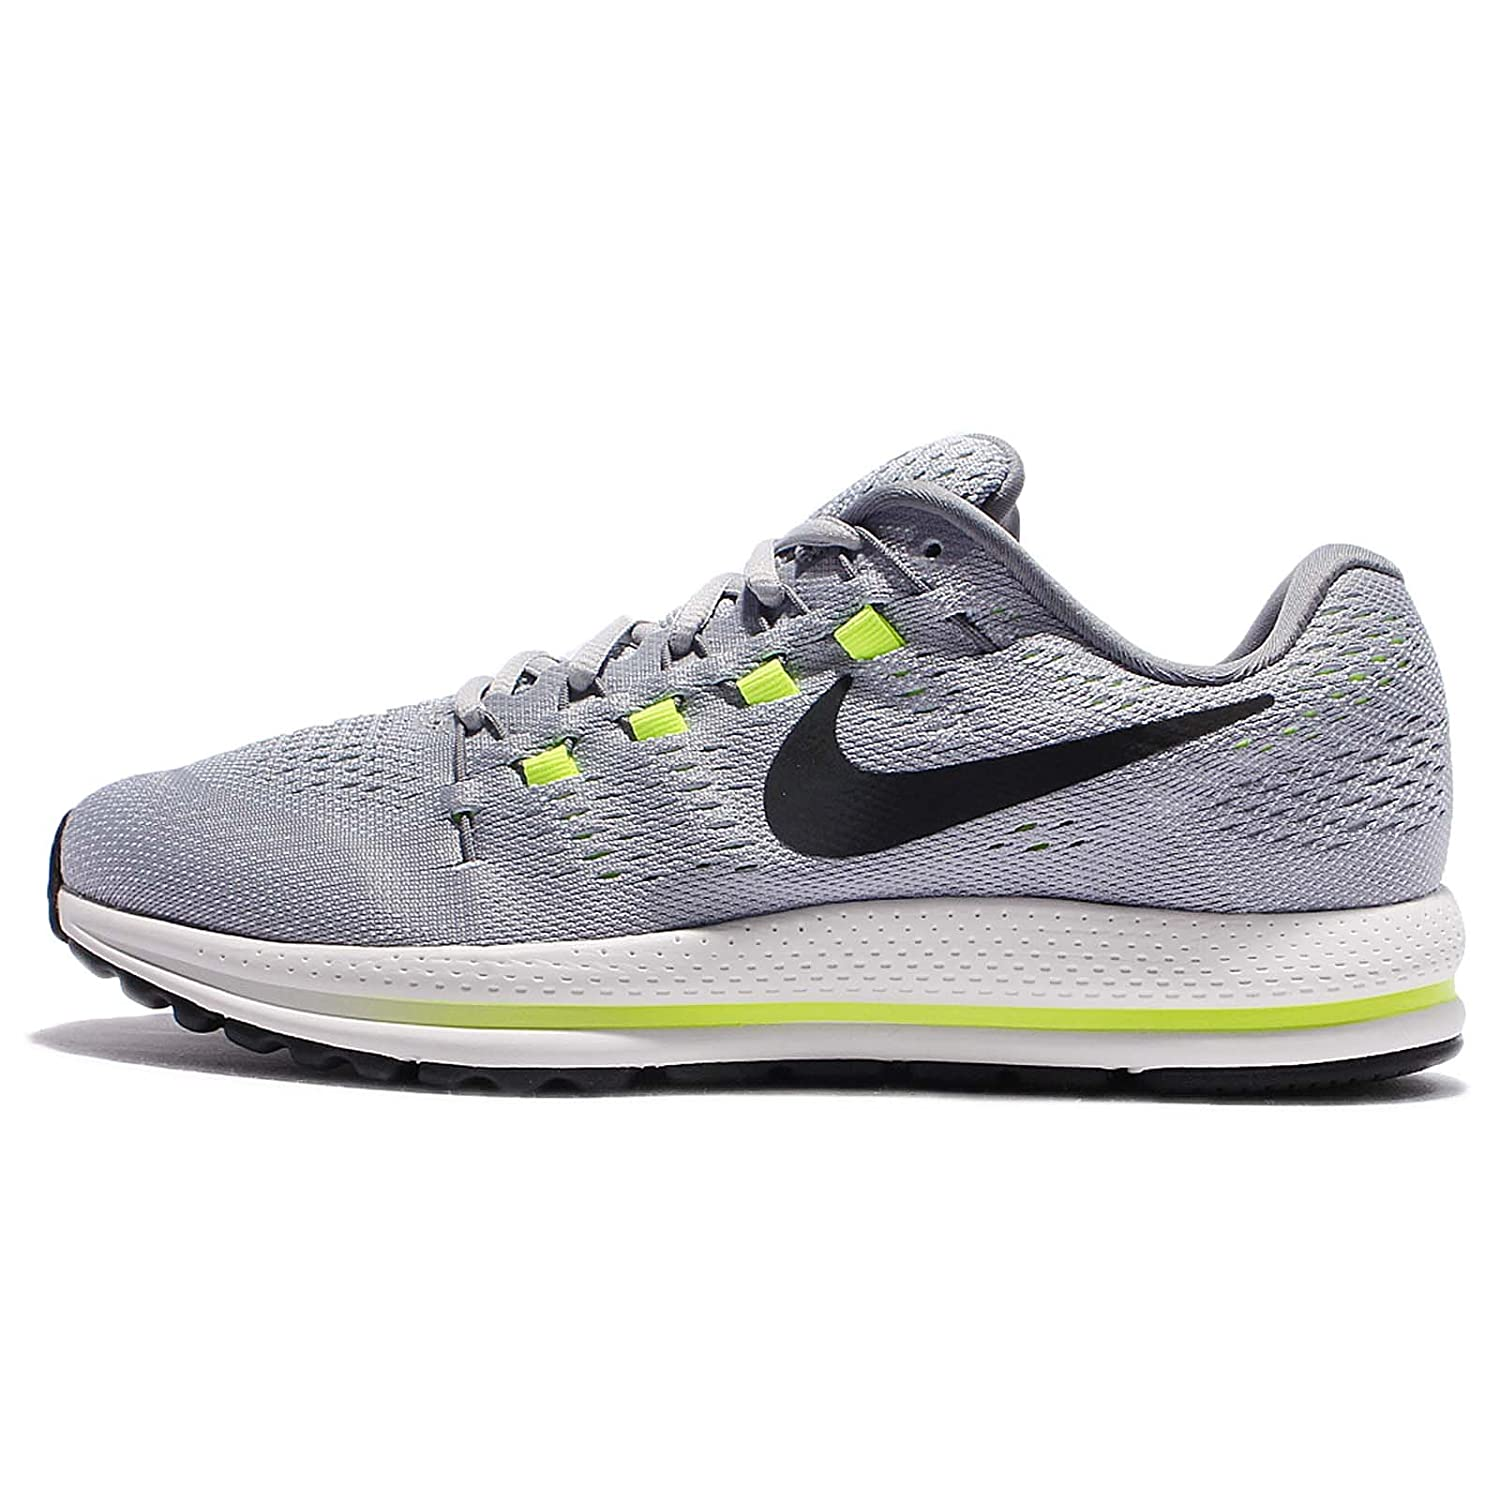 0b4ceb5227a577 Nike Men s Air Zoom Vomero 12 Running Shoe Wolf Grey Black-Cool Grey-Pure  Platinum 14. 0  Buy Online at Low Prices in India - Amazon.in